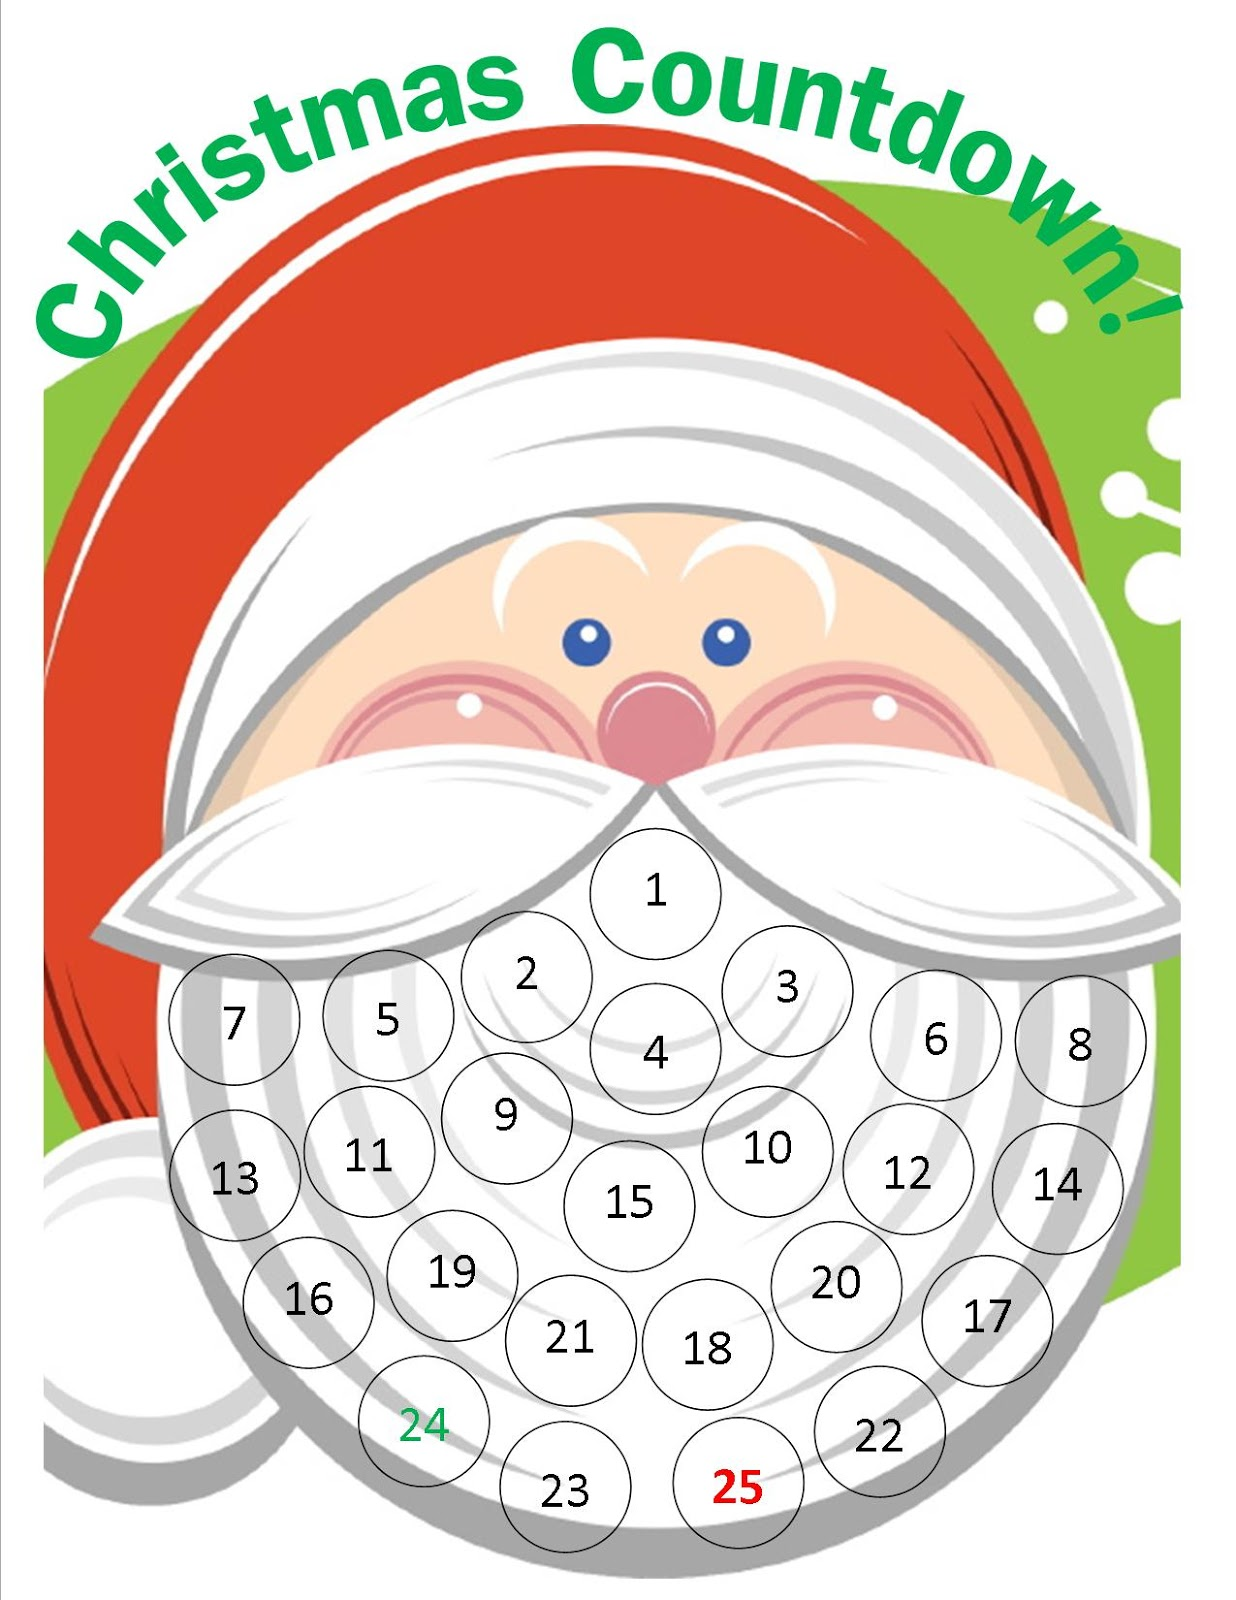 Santa Face Template Same idea: cute santa face